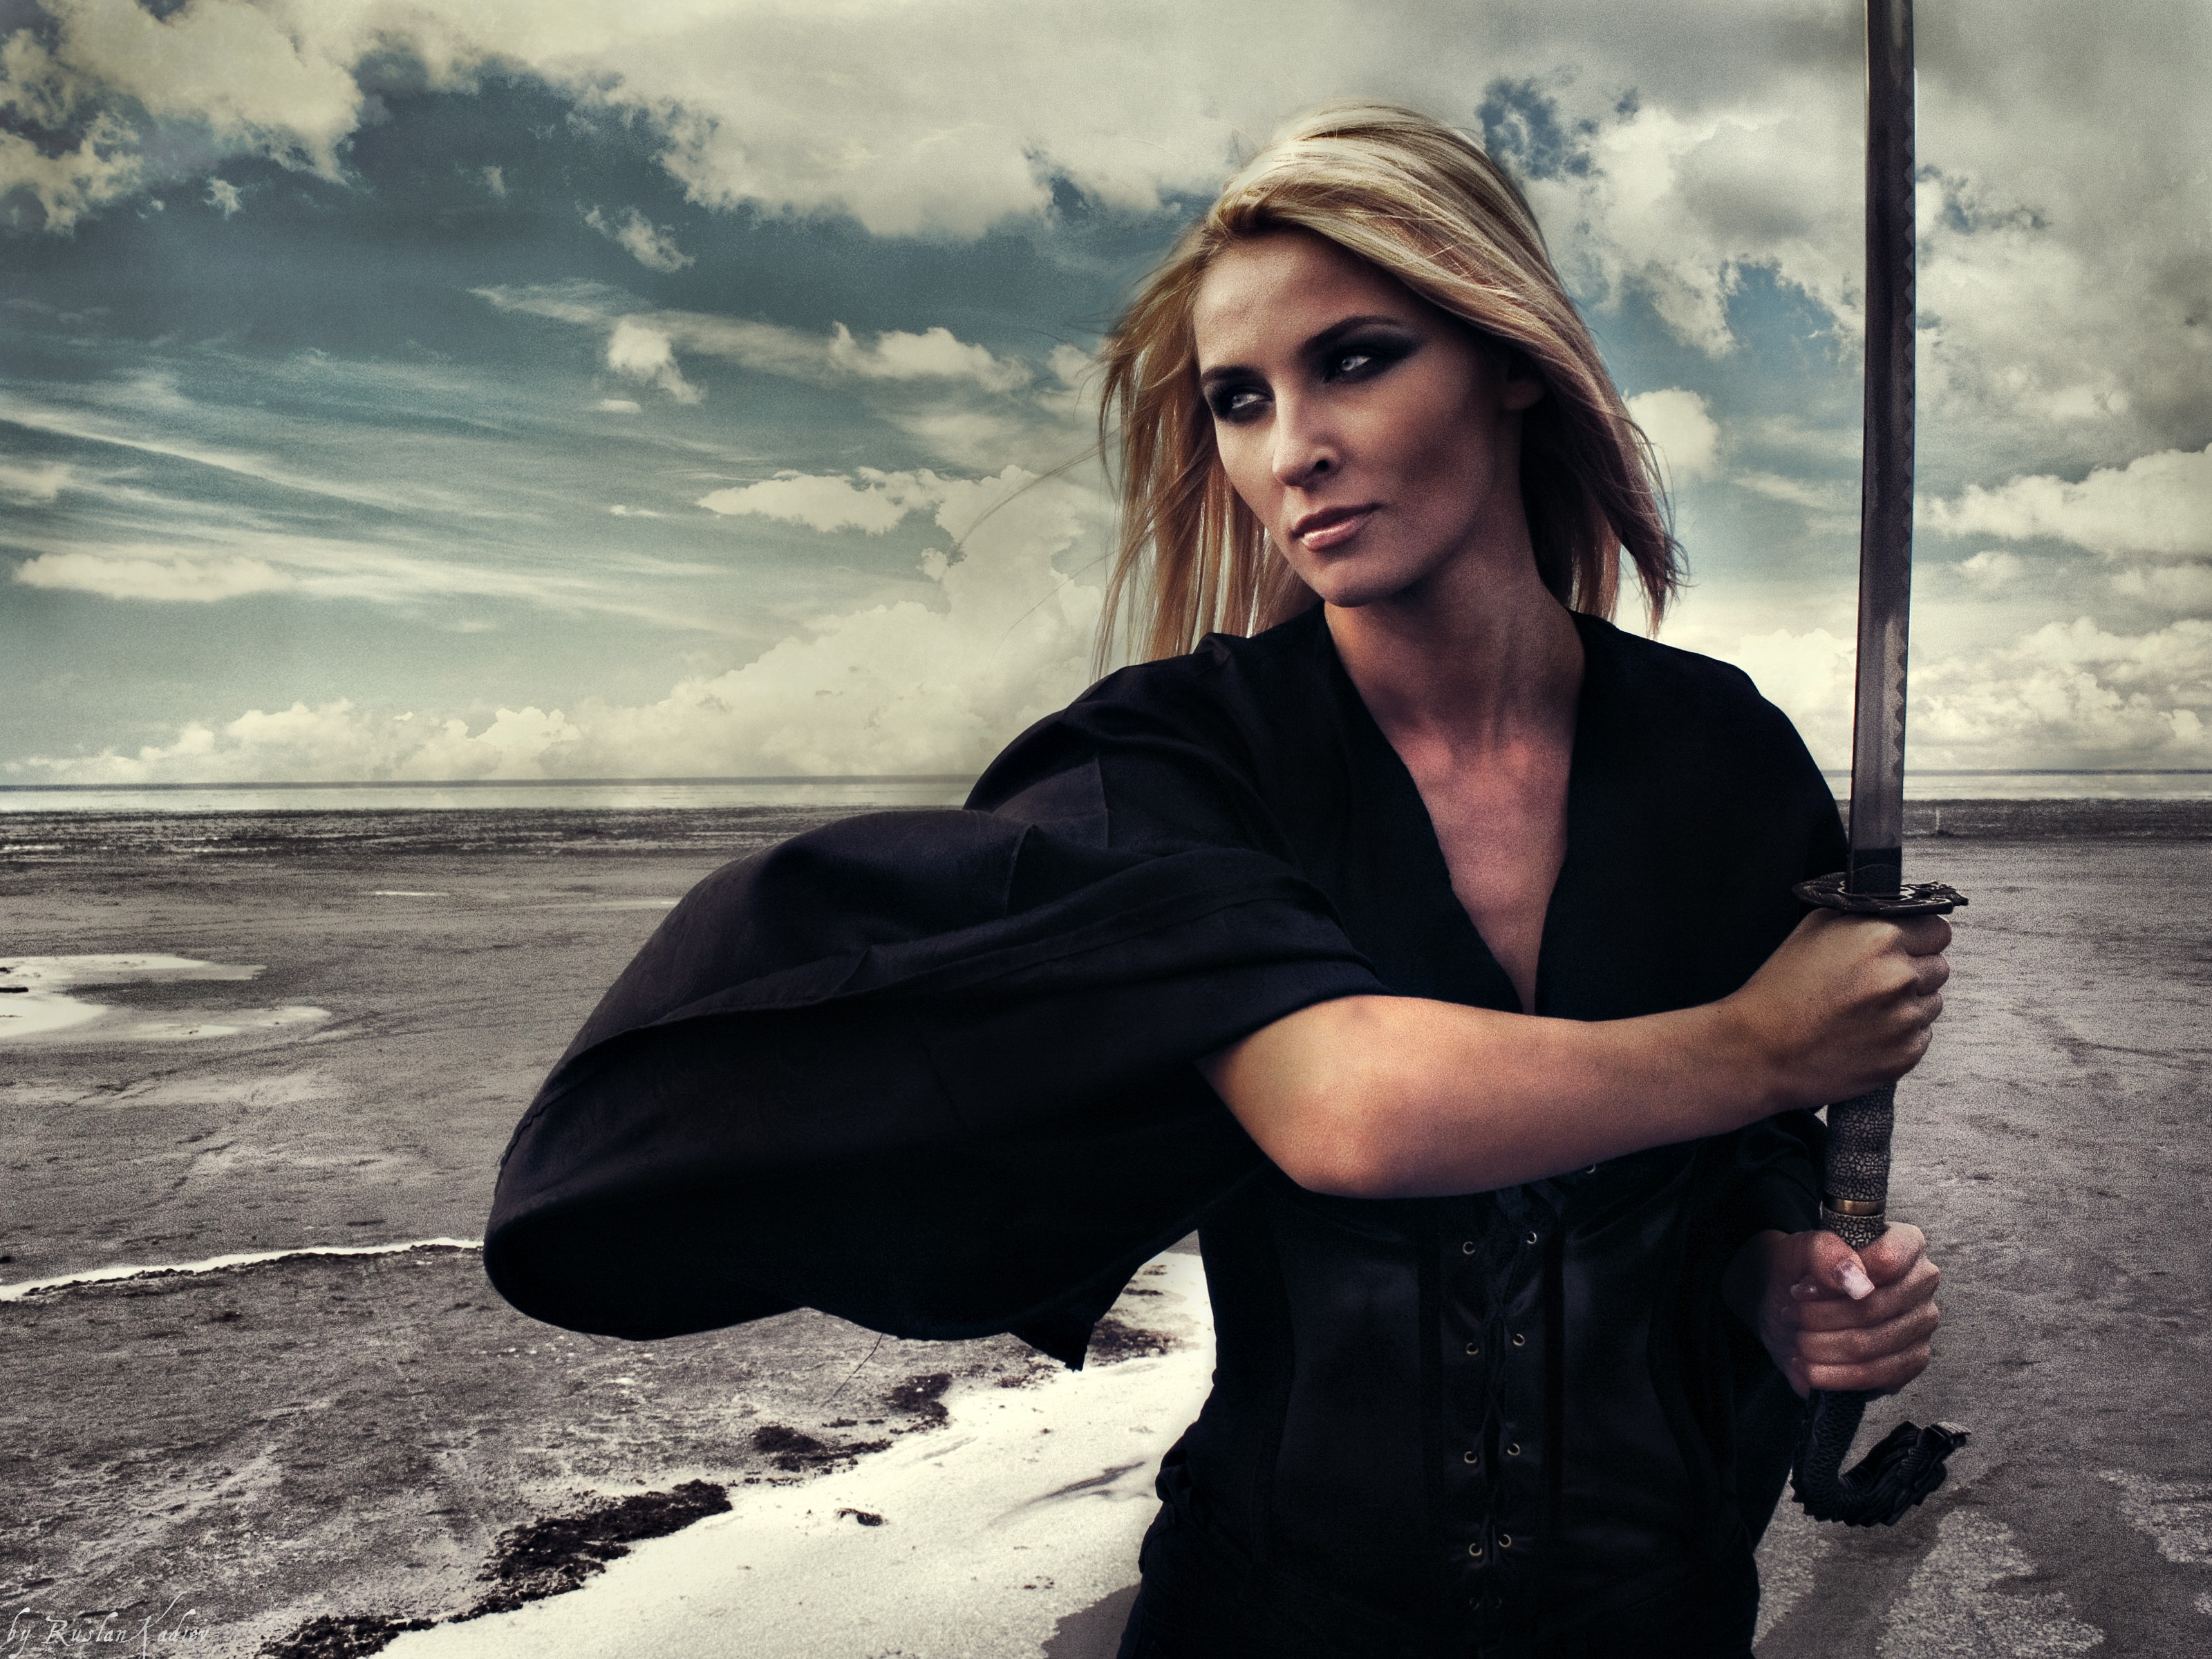 Model hd wallpaper background image 3200x2400 id - Girl with sword wallpaper ...